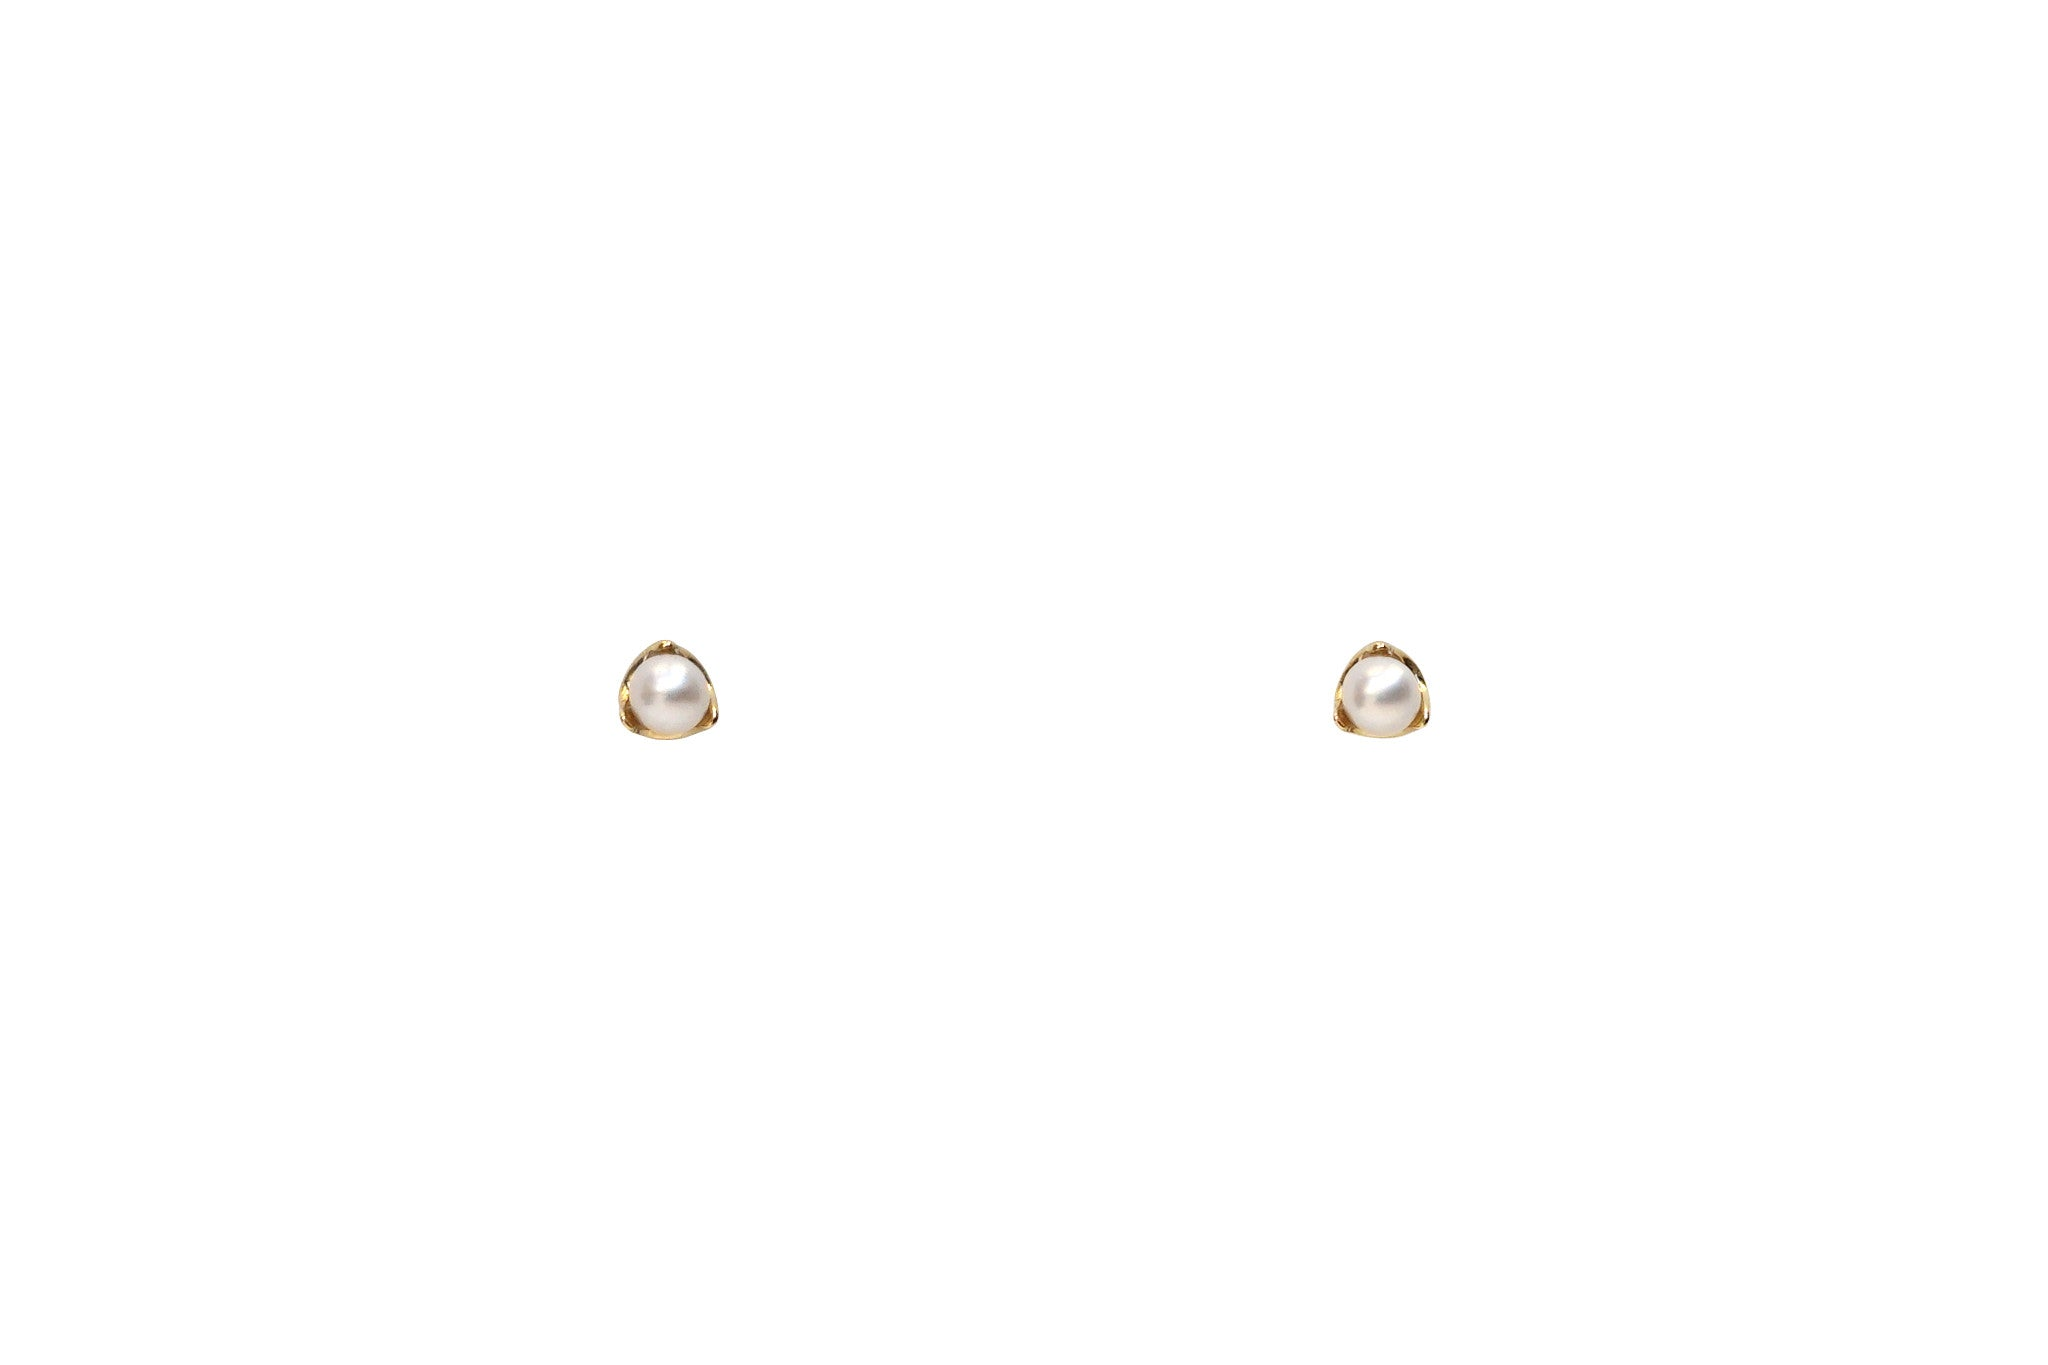 14k Gold Micro Tiny Pearl Stud Earrings E2334